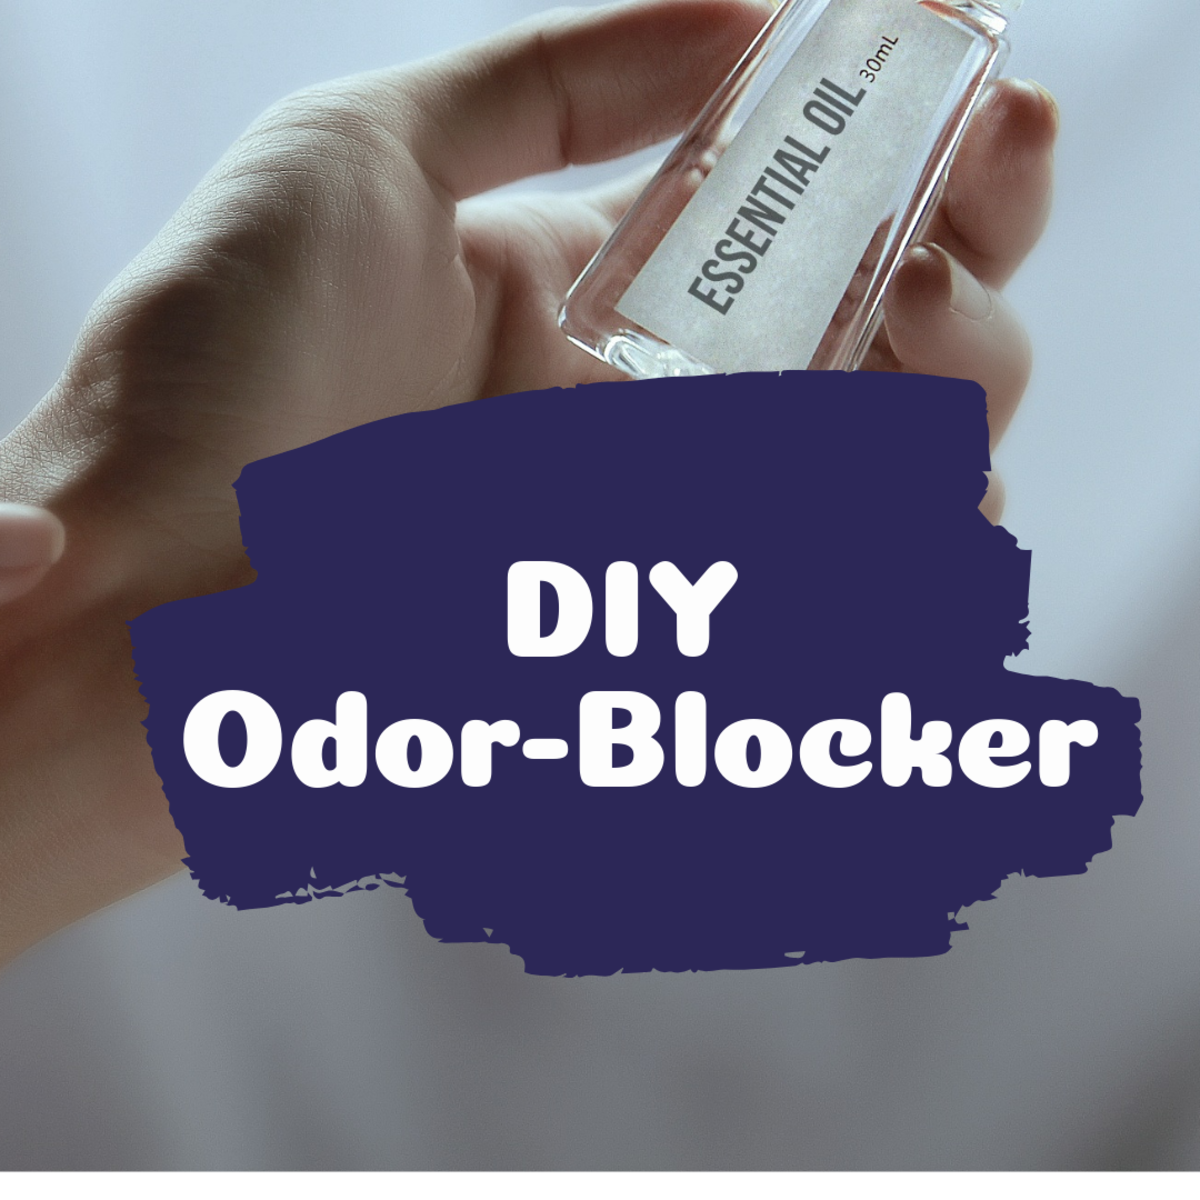 DIY Odor-Blocker